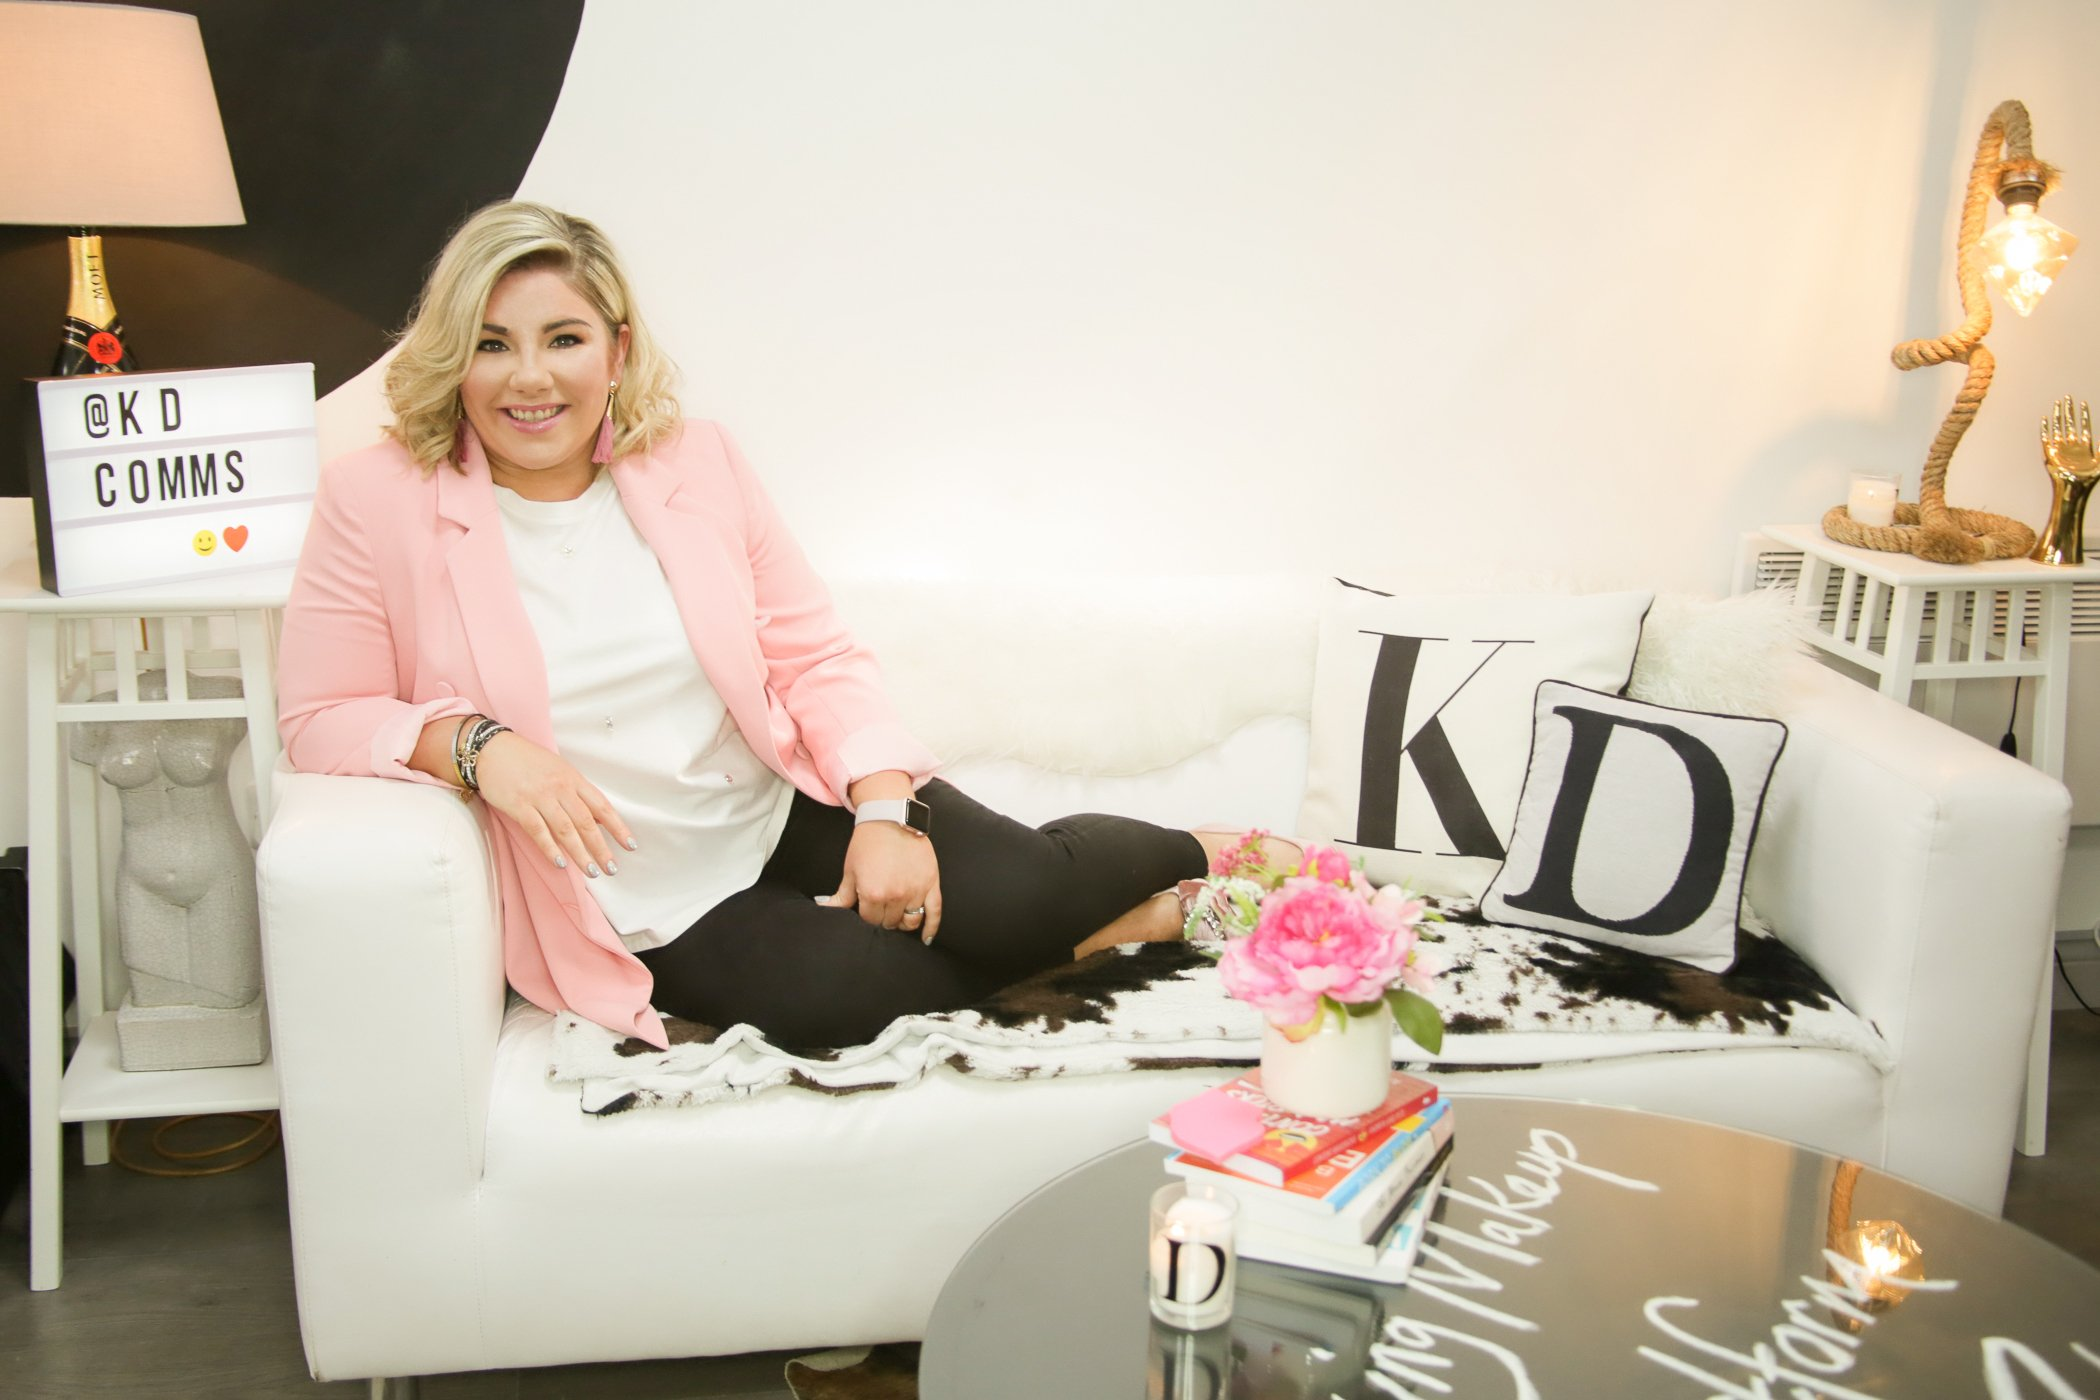 Kathryn lounges on a sofa to talk with you about her Headliners Online community for Start Ups and Micro Businesses